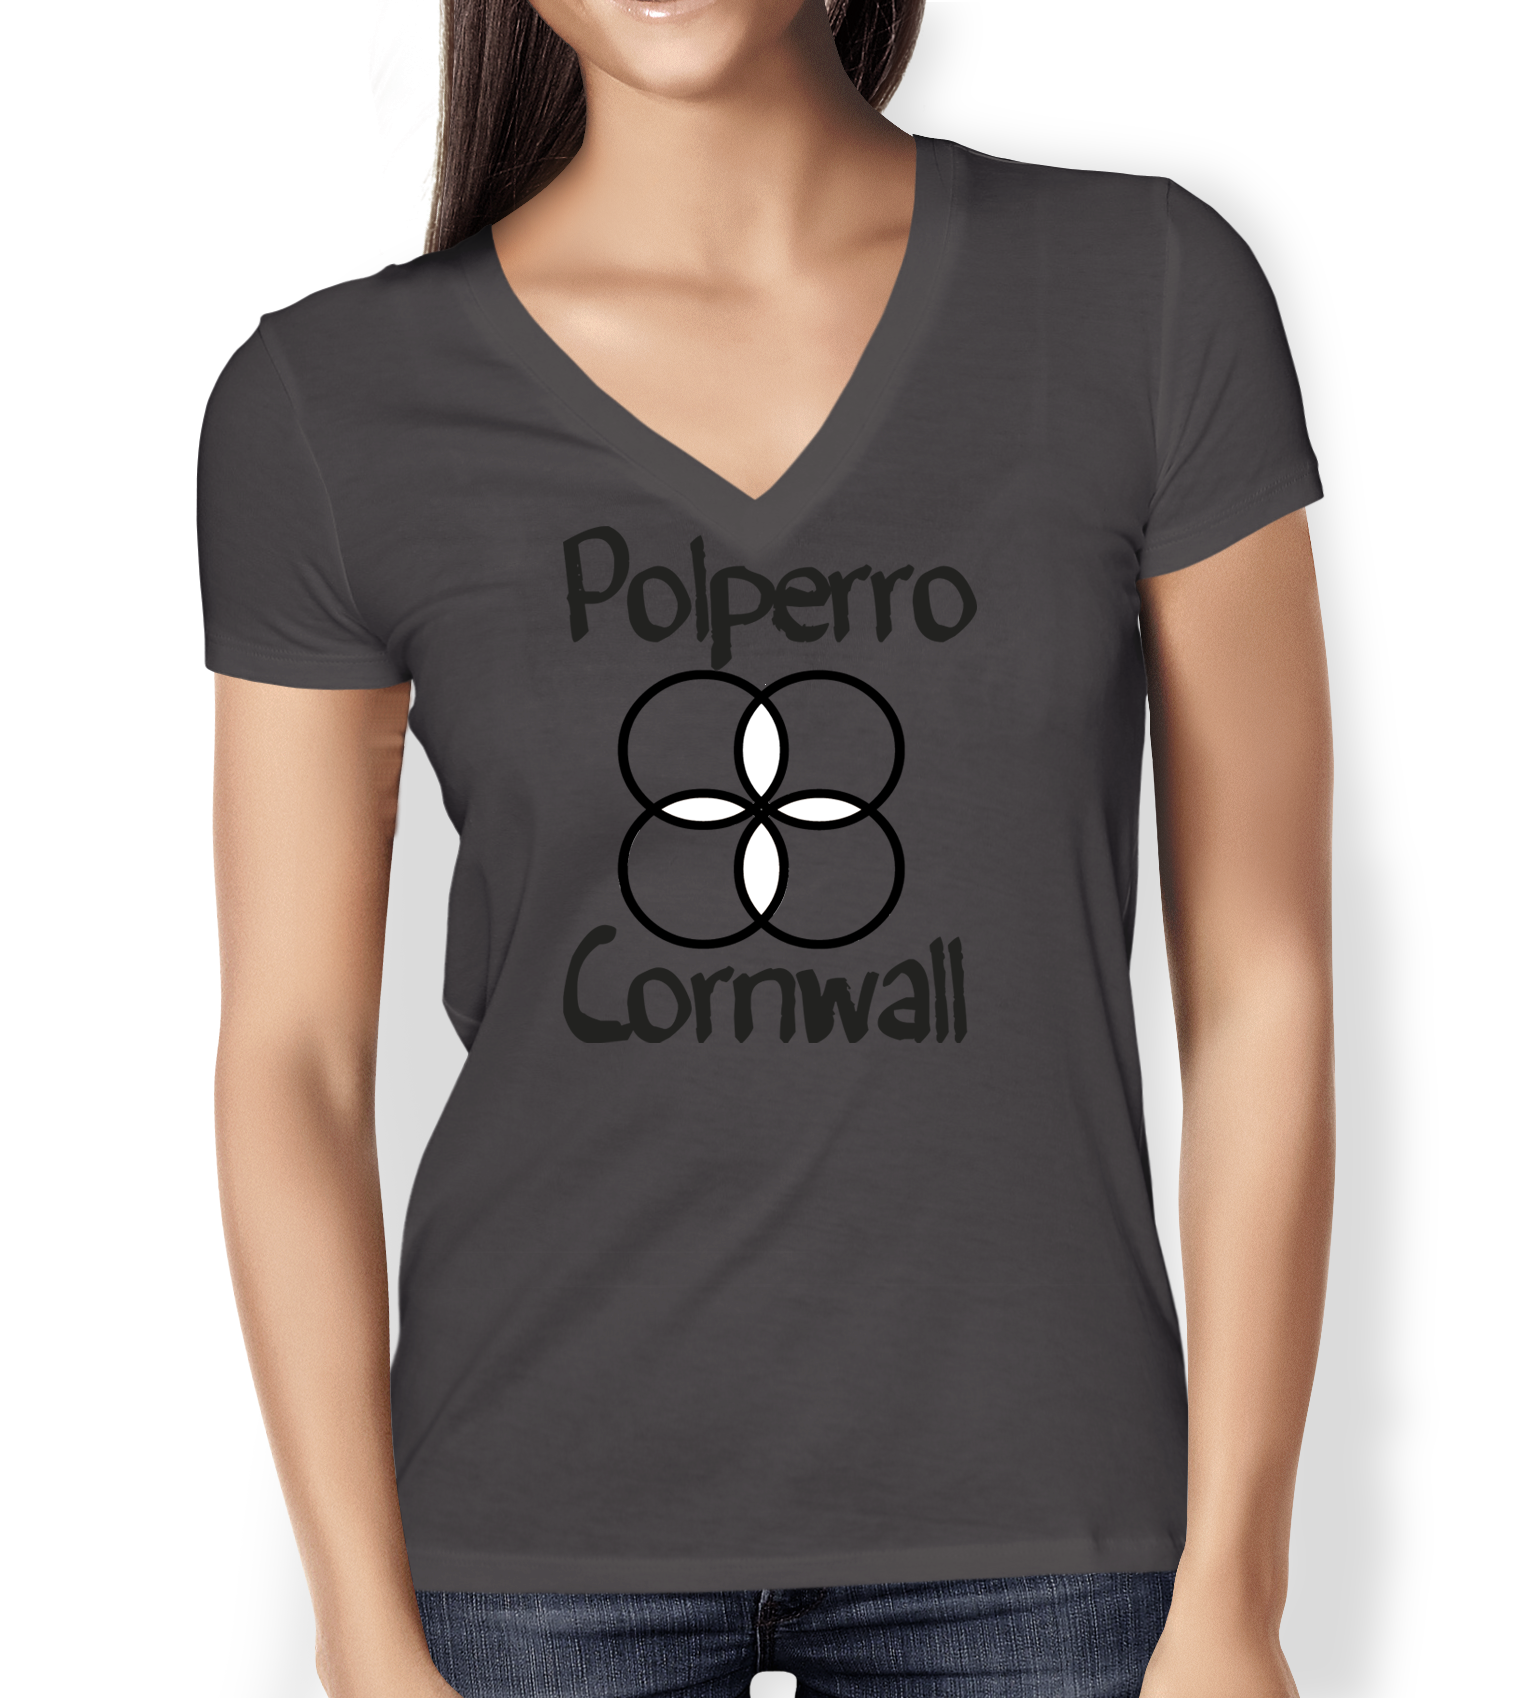 polperro-cornwall-grey-ladies-v-neck